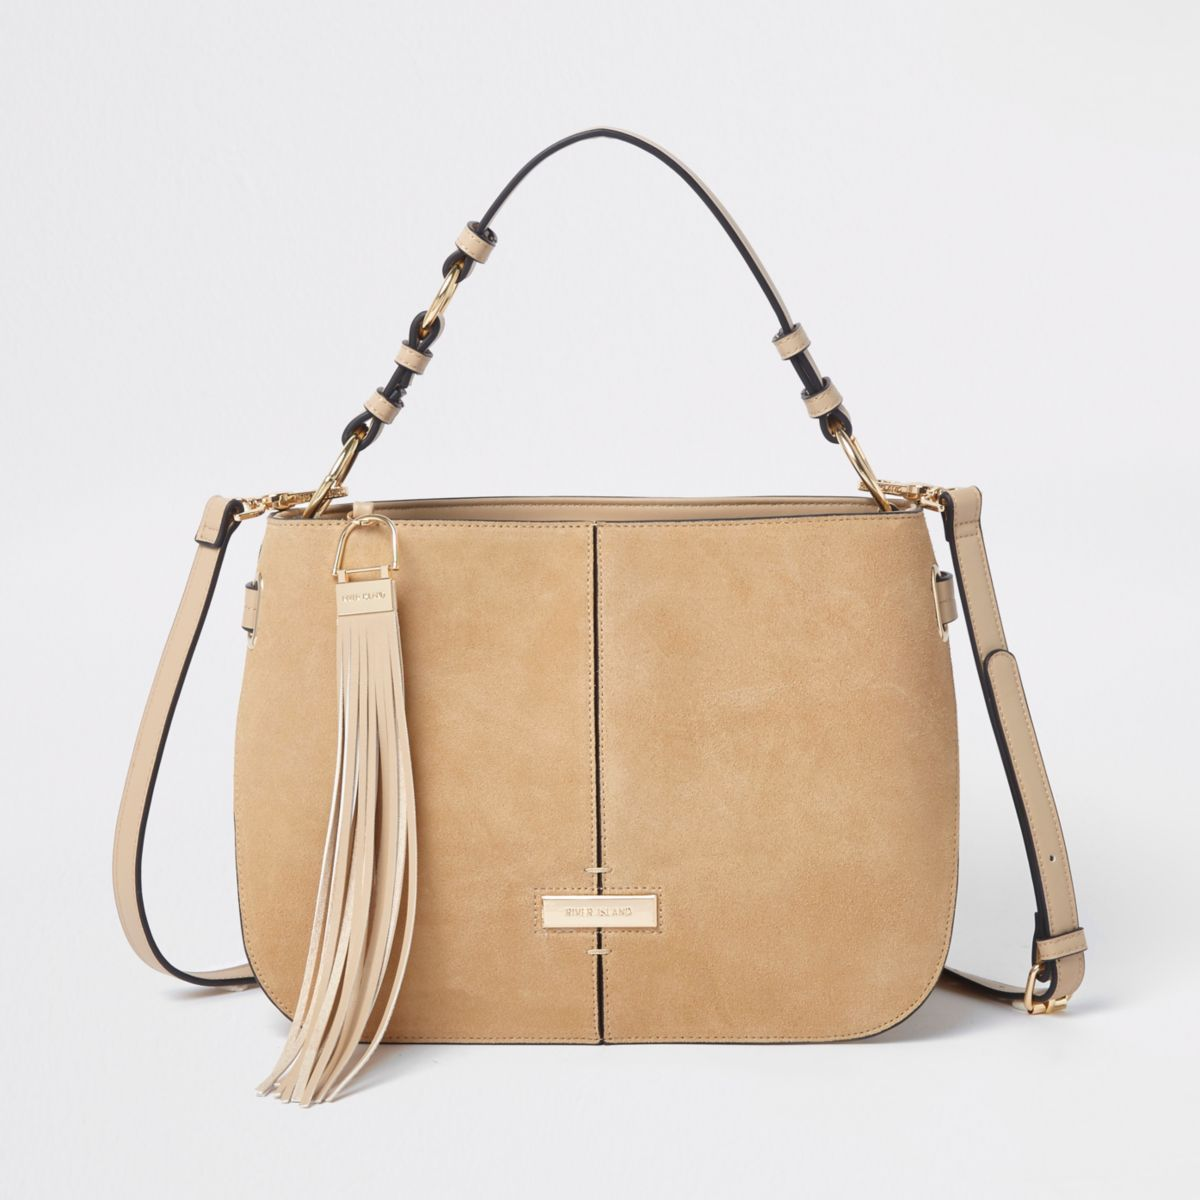 Cream suede tassel leather cross body bag